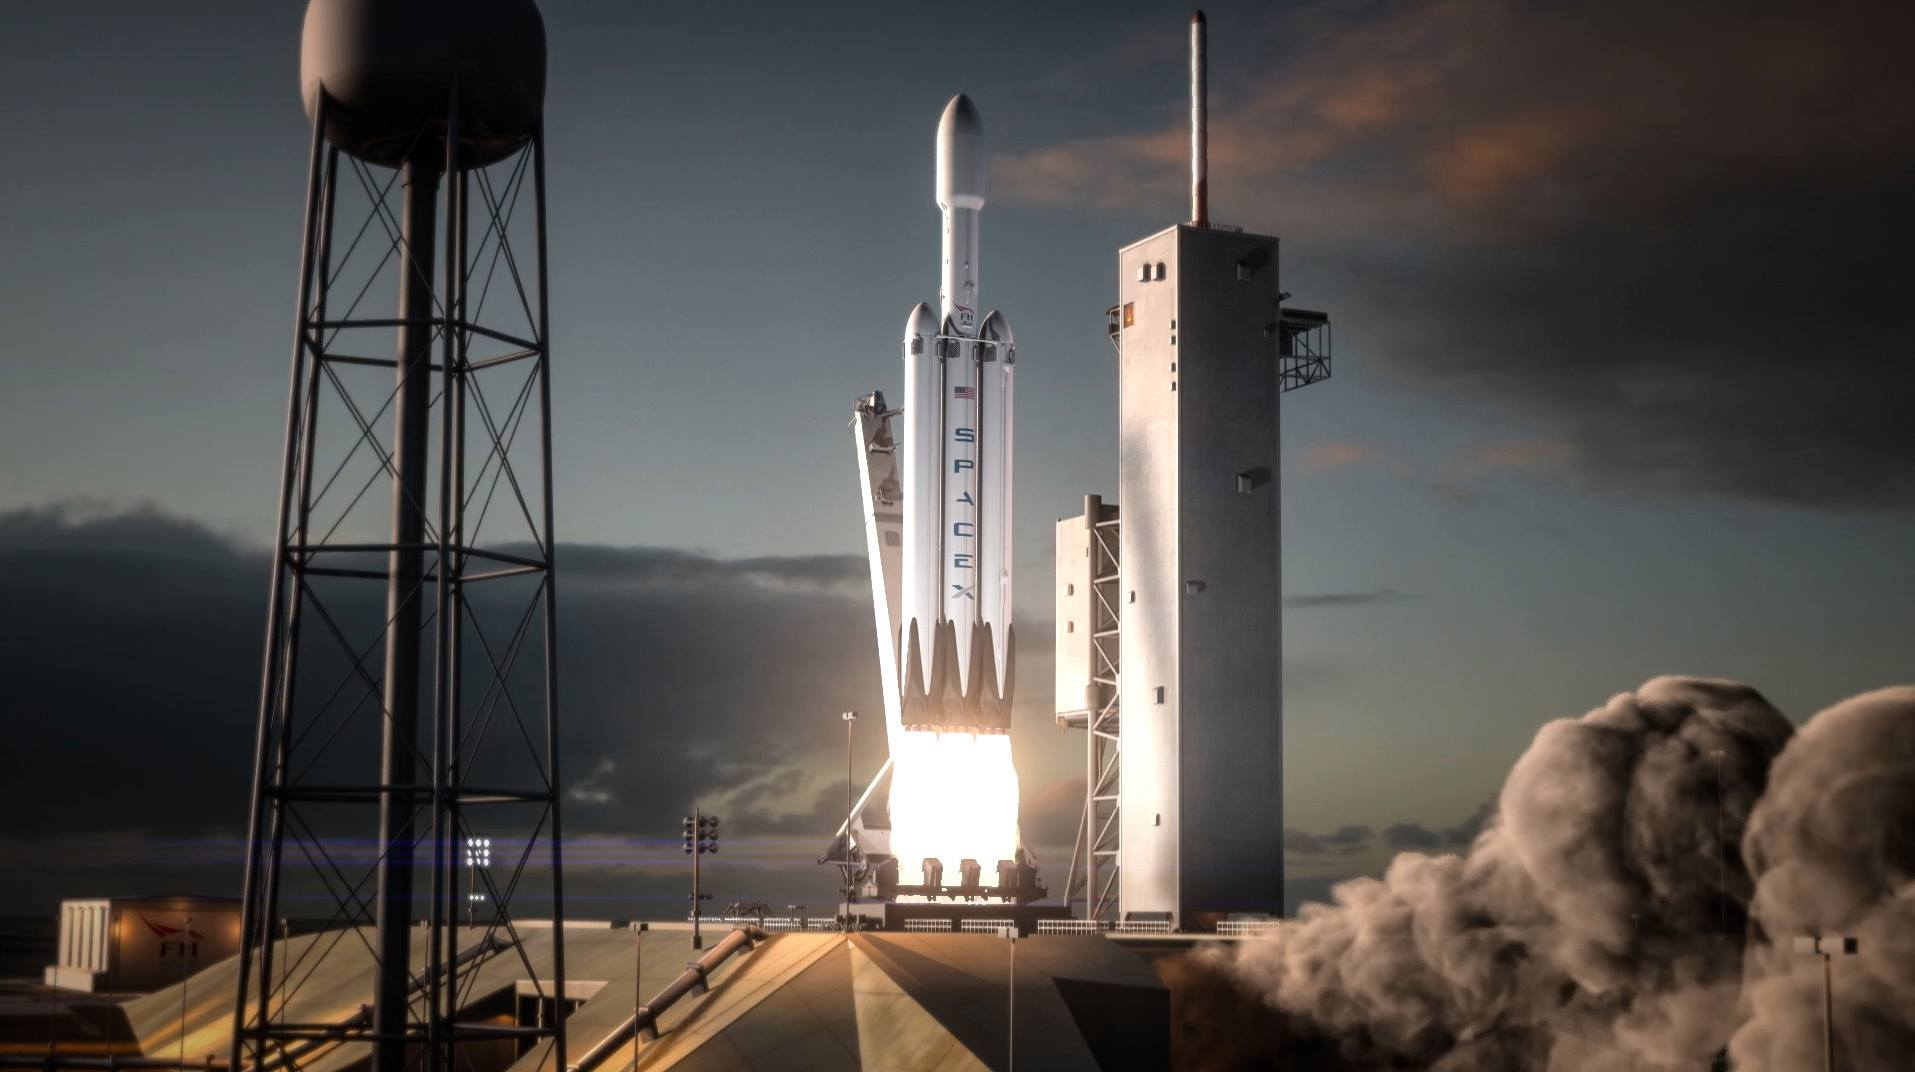 falcon heavy rocket launch and booster recovery featured in cool new spacex animation